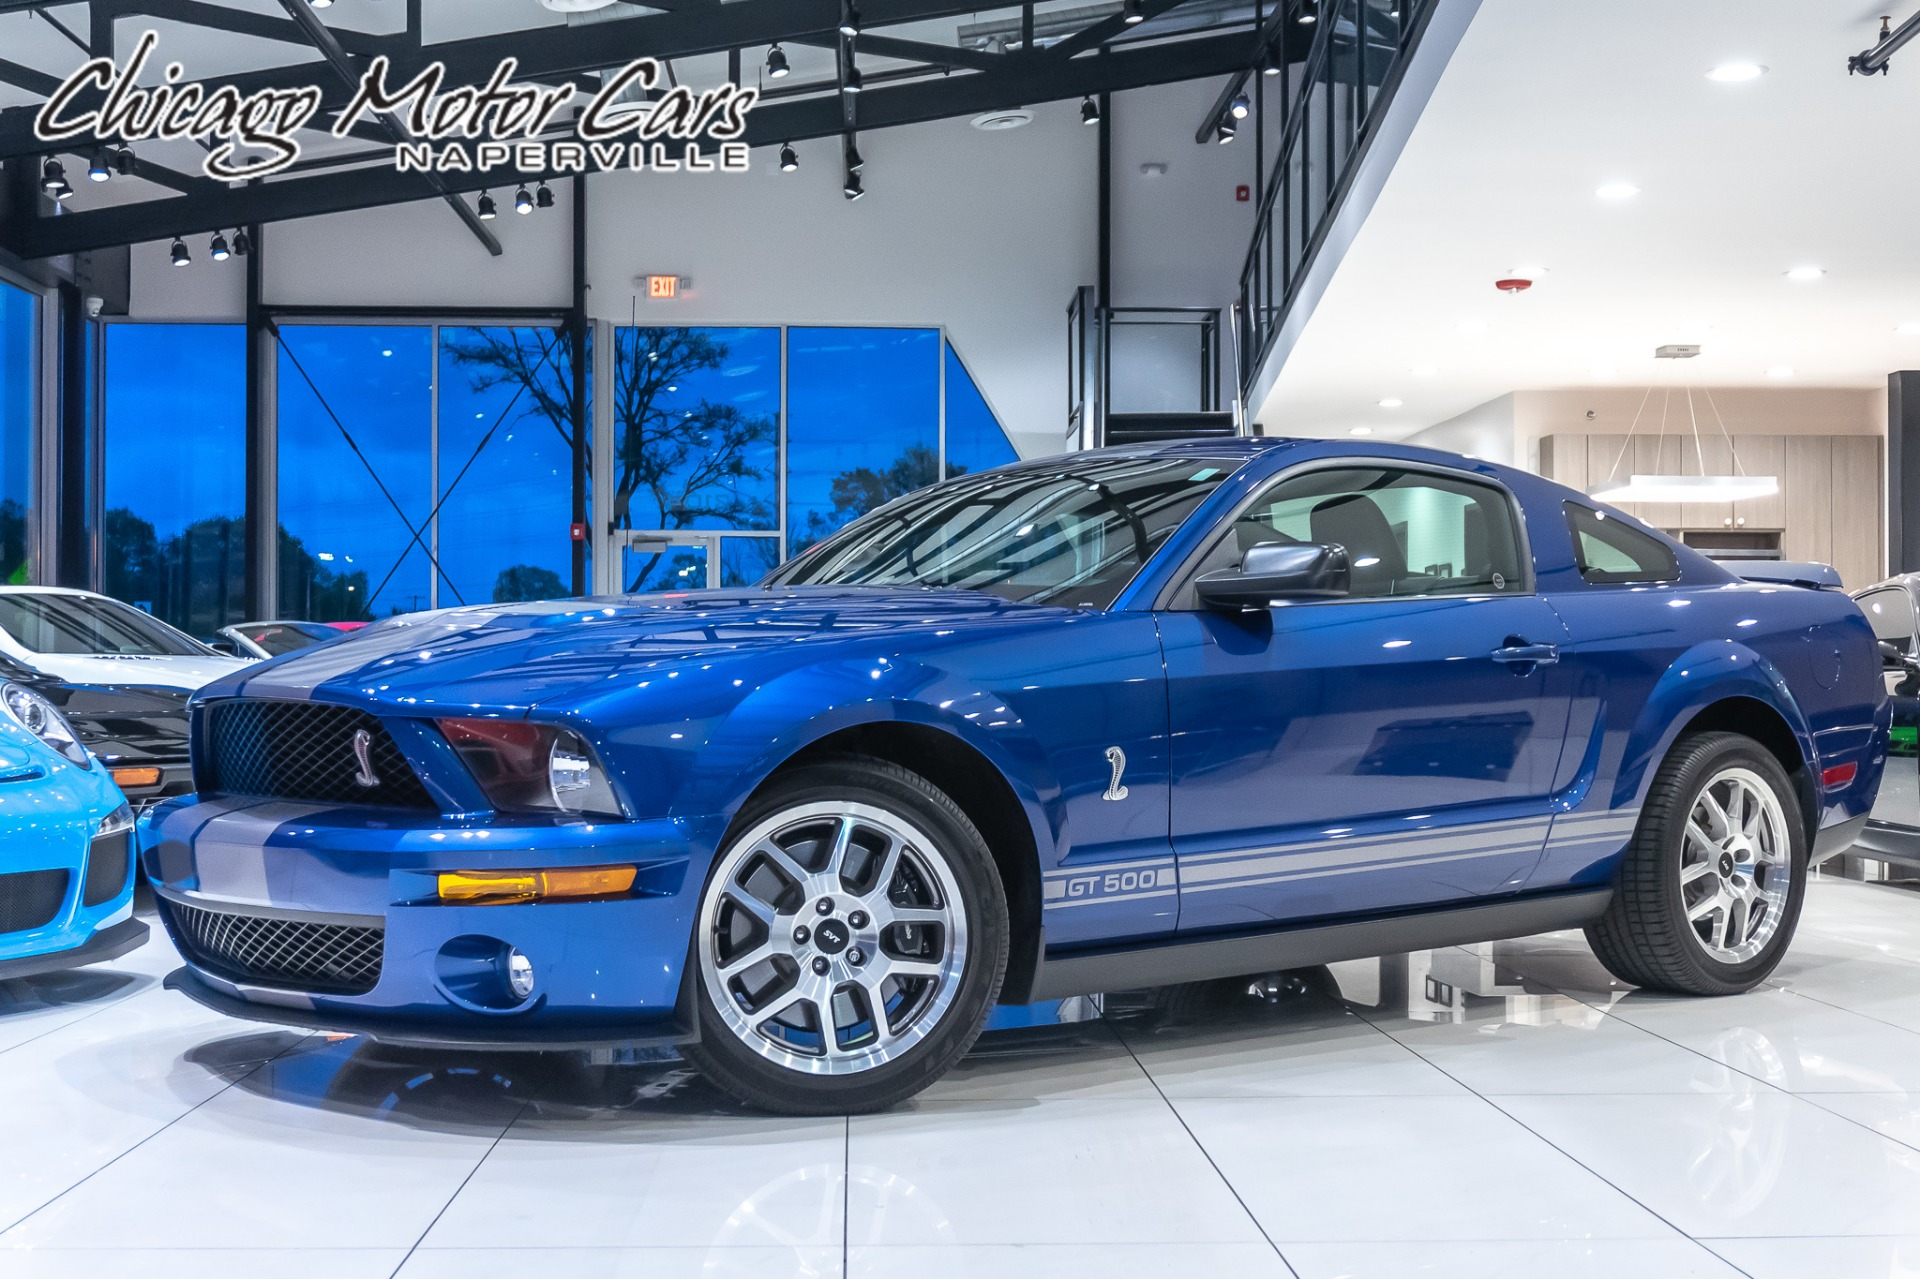 Used 2007 ford mustang shelby gt500